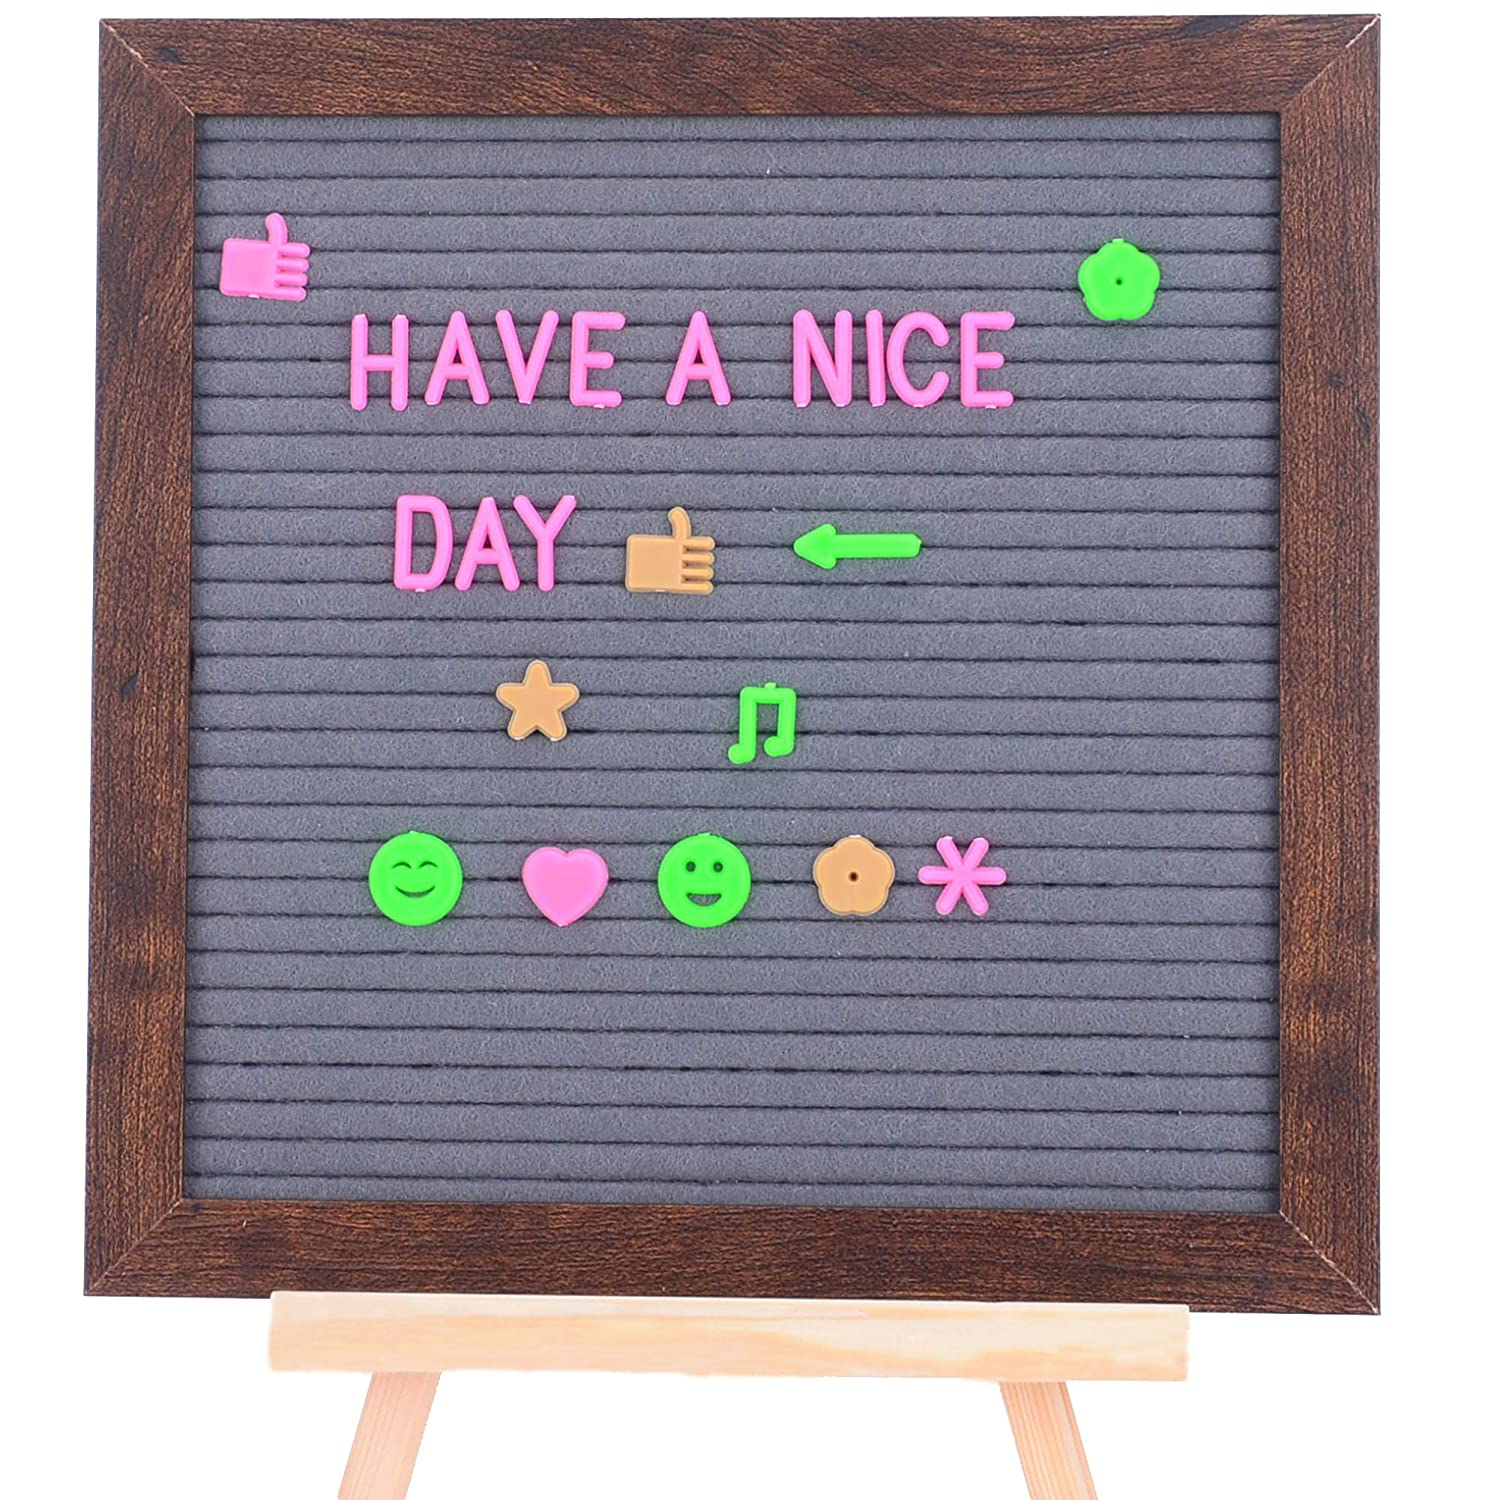 Felt Letter Board 10x10 Double Sided Letter Board Gray /& Black Changeable Message Board with 680 Clean Cut Letters Messages Wood Frame Word Board for Quotes 2 Colors Displays Words /& More